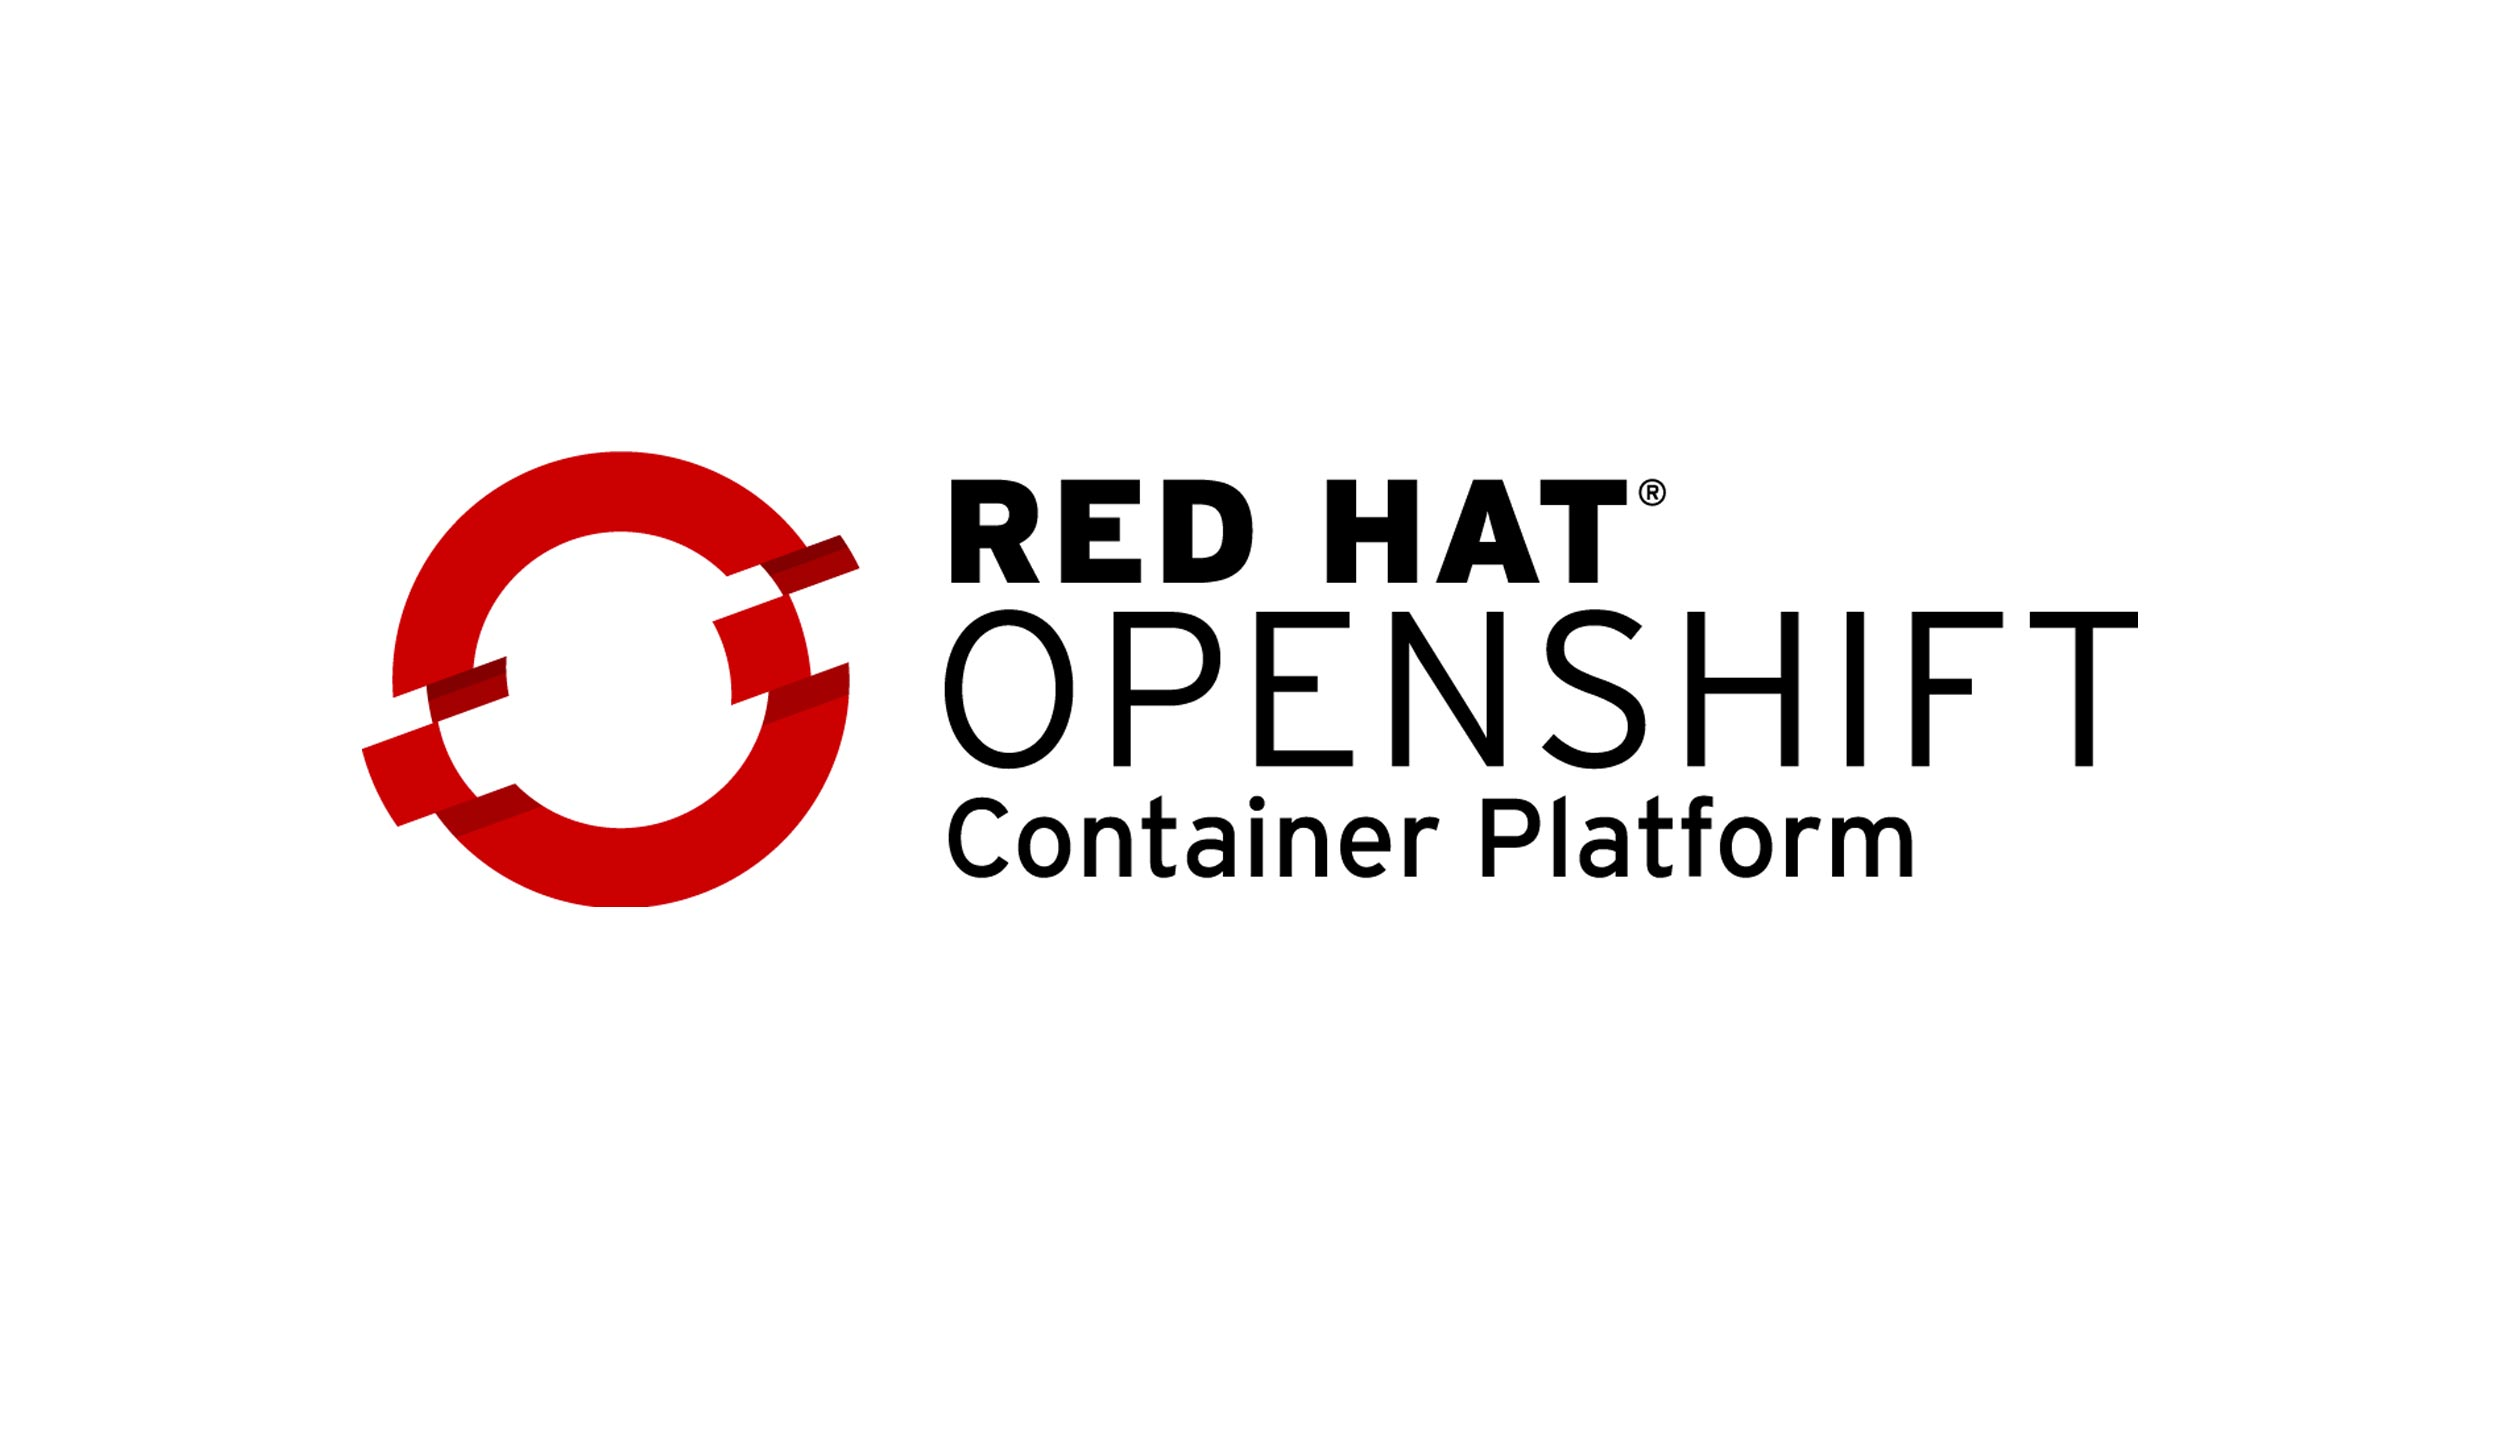 Continued investment in Red Hat OpenShift Container Platform security capabilities